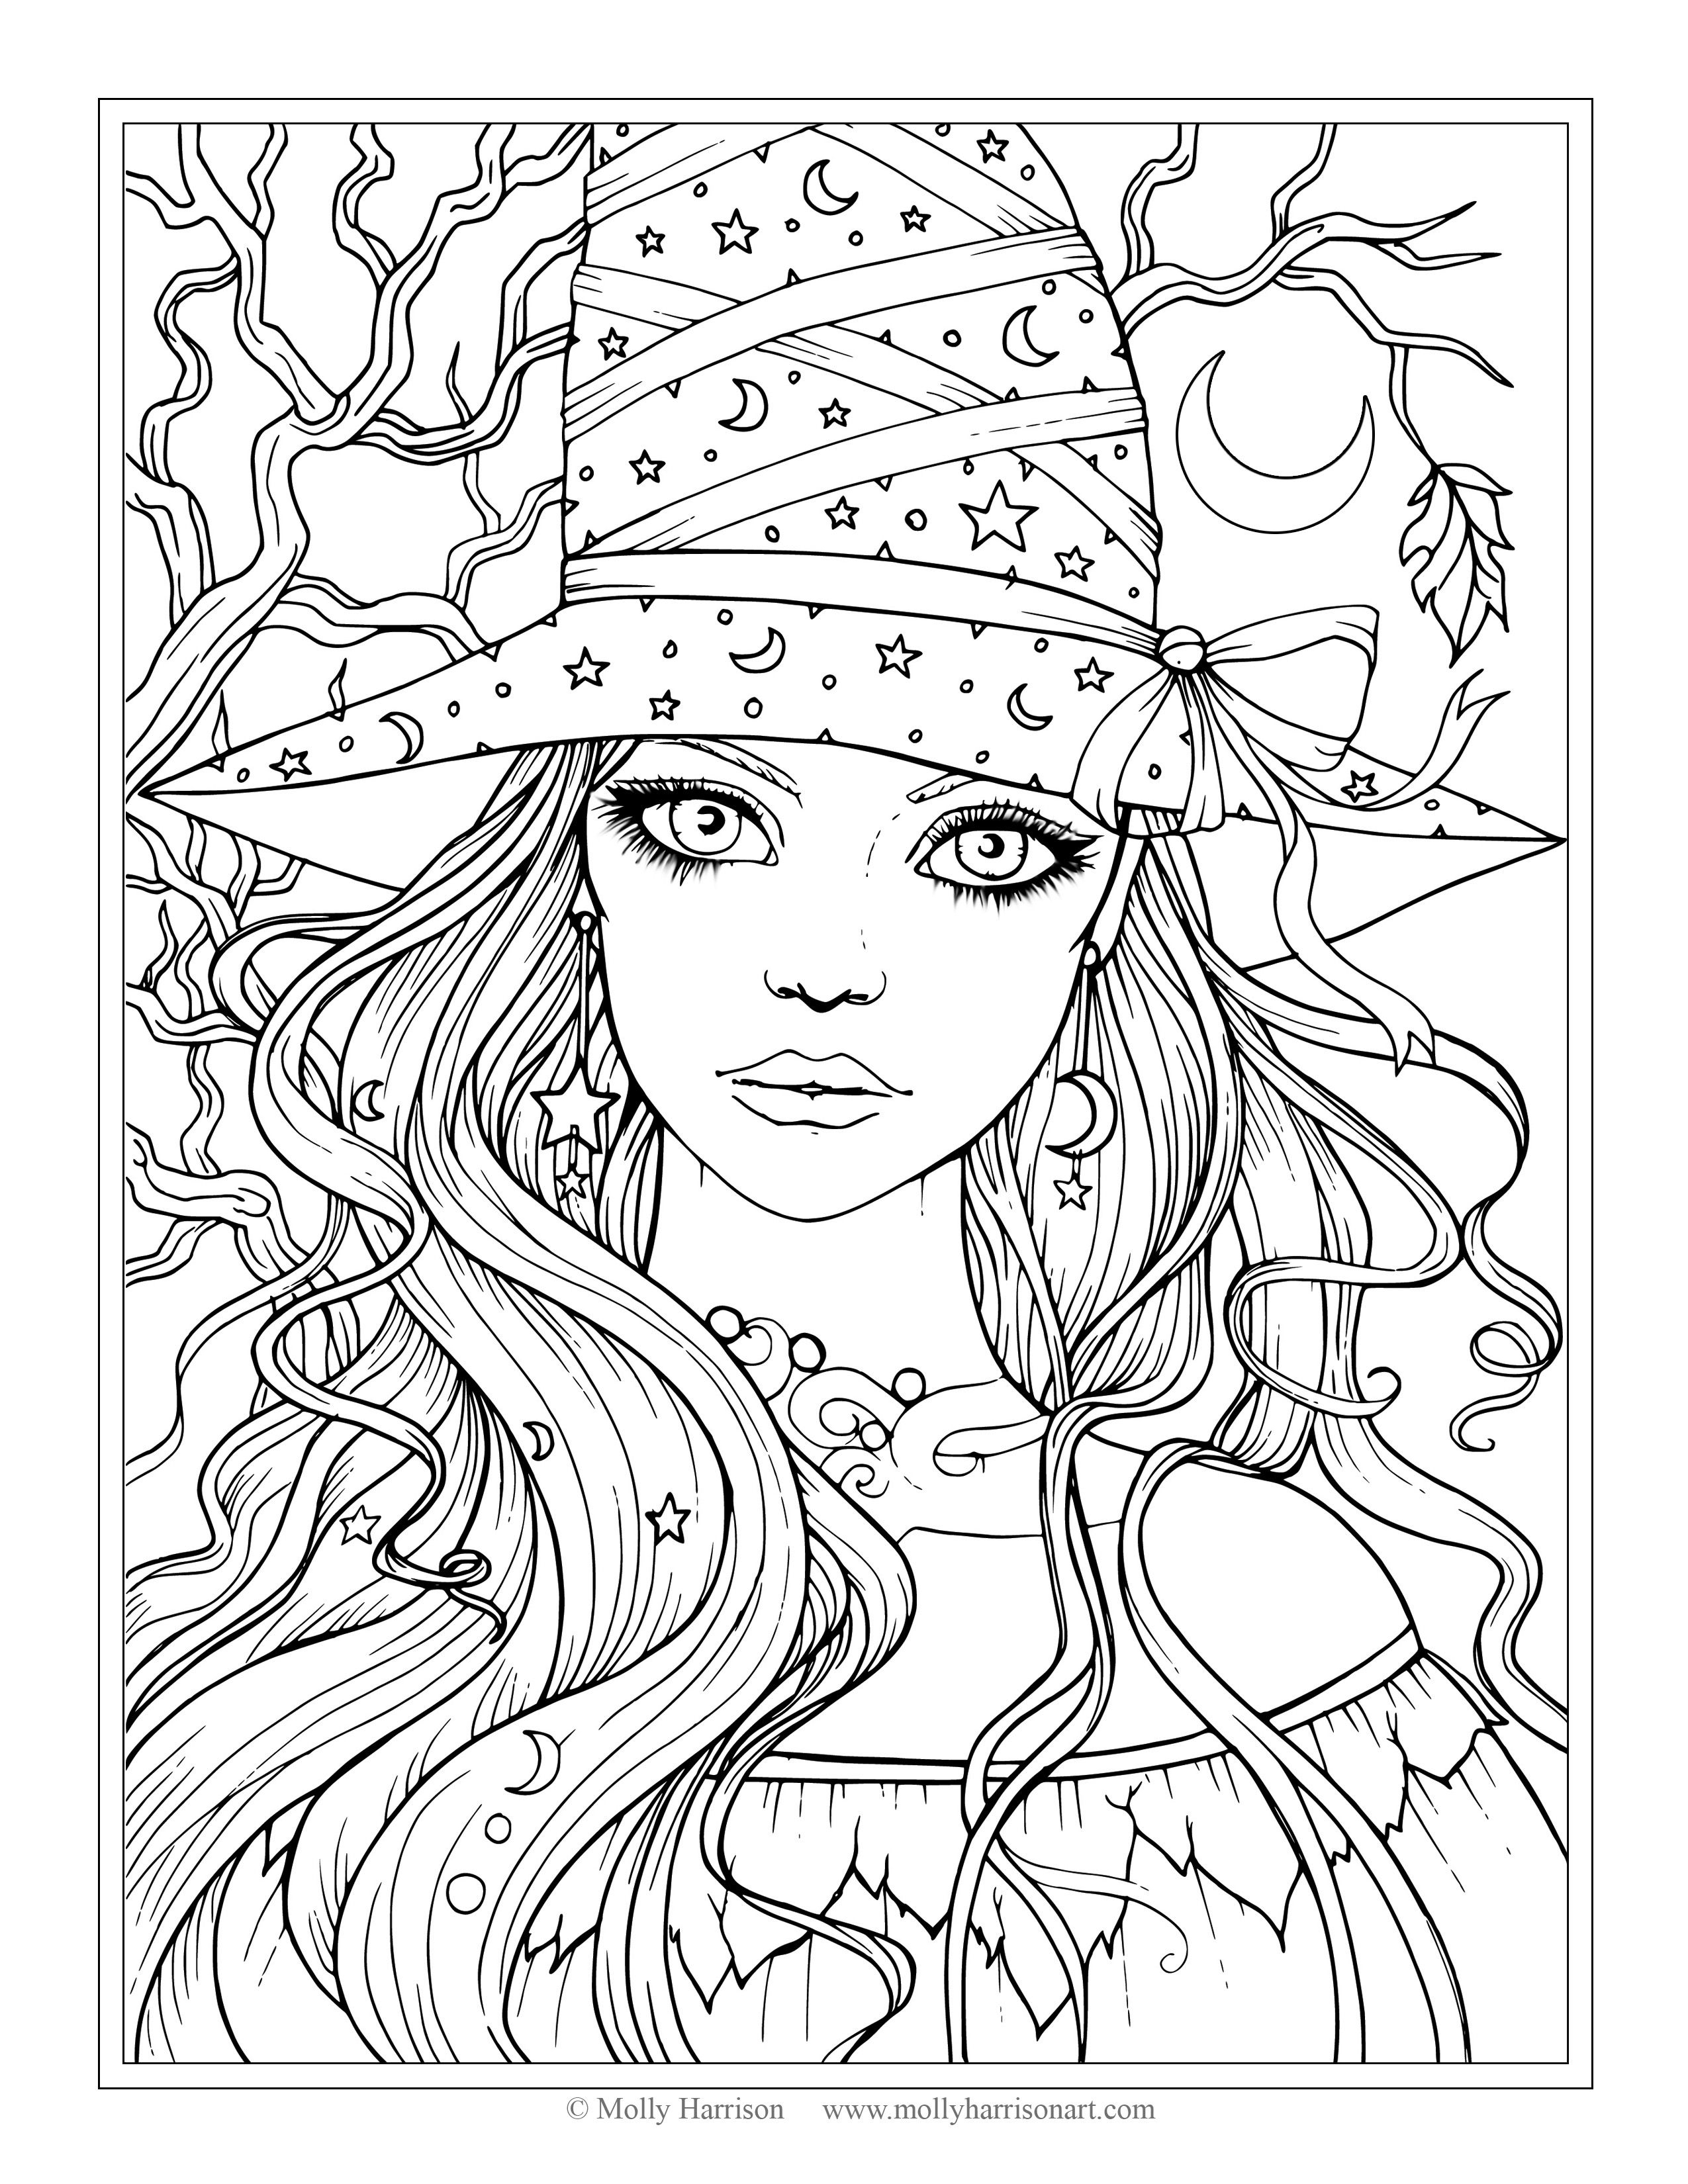 Mia And Me Coloring Pages New Free Witch Coloring Page Halloween